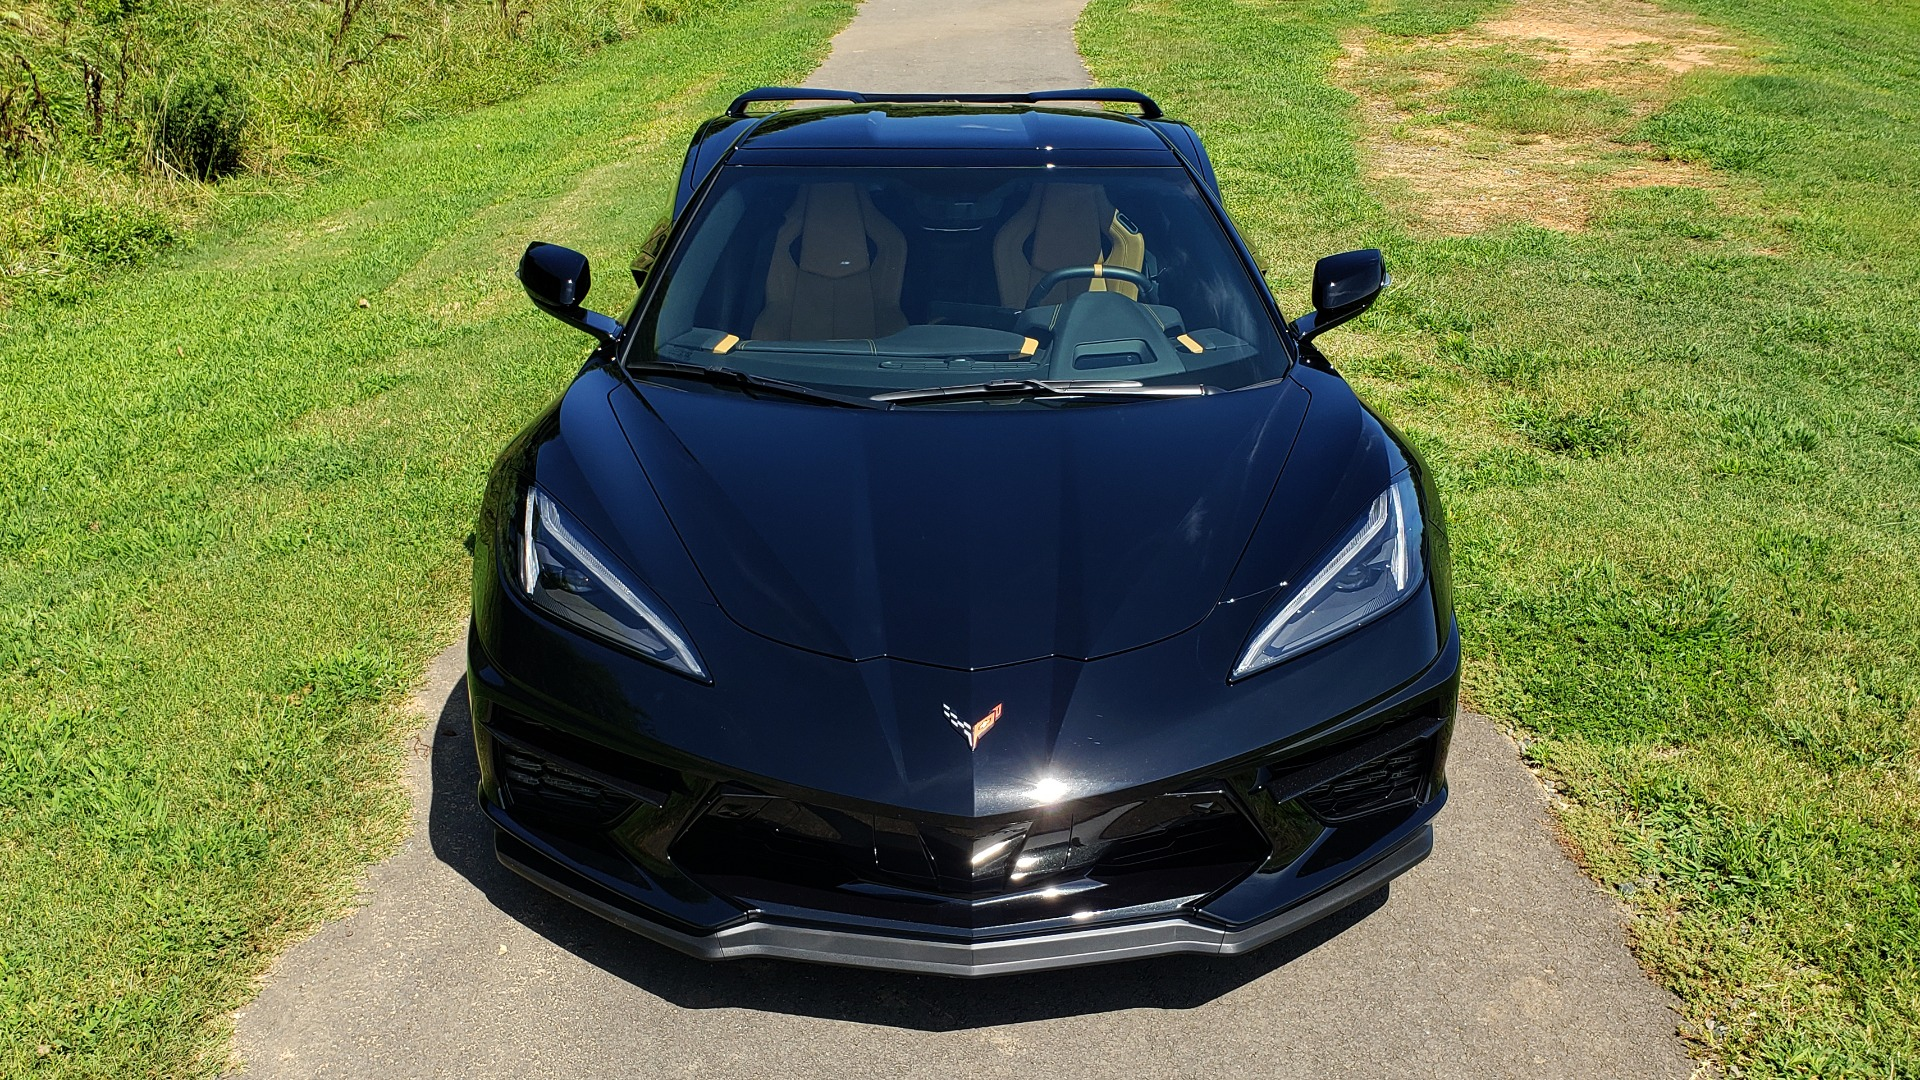 Used 2020 Chevrolet Corvette 2LT for sale Sold at Formula Imports in Charlotte NC 28227 17